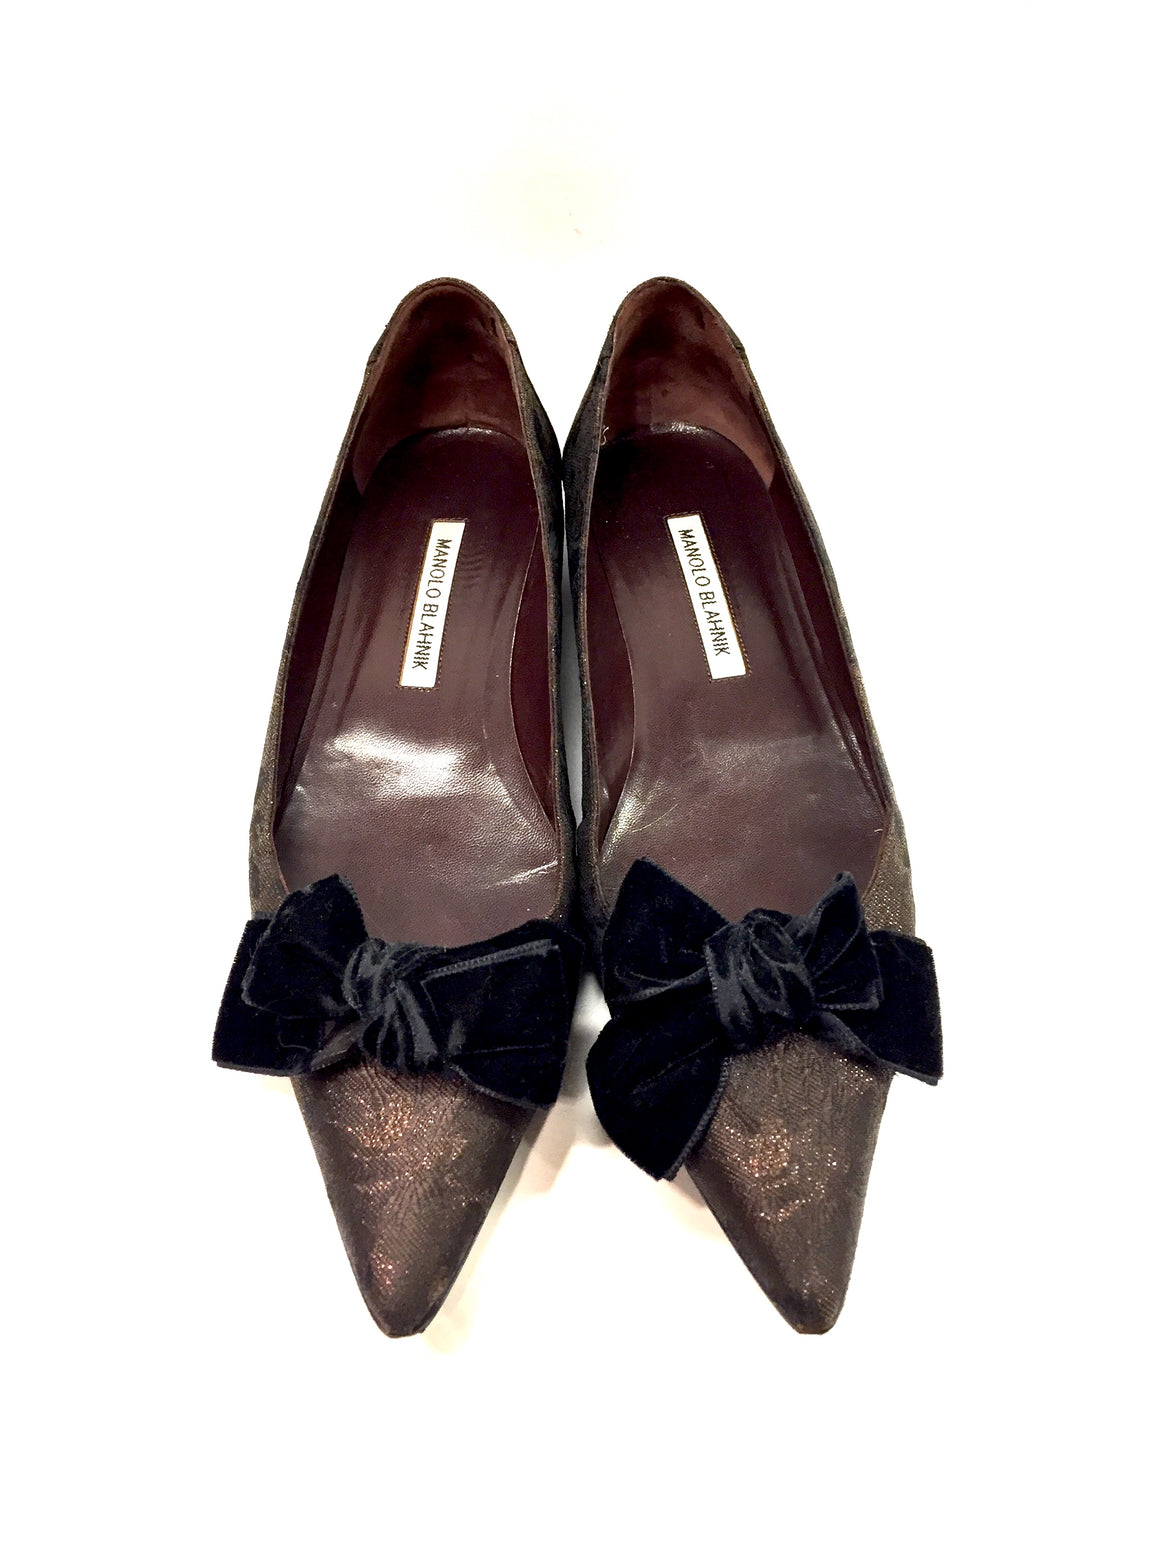 MANOLO BLAHNIK Brown/Black Metallic Floral Brocade Velvet-bow Pointed-Toe Flats Sz39